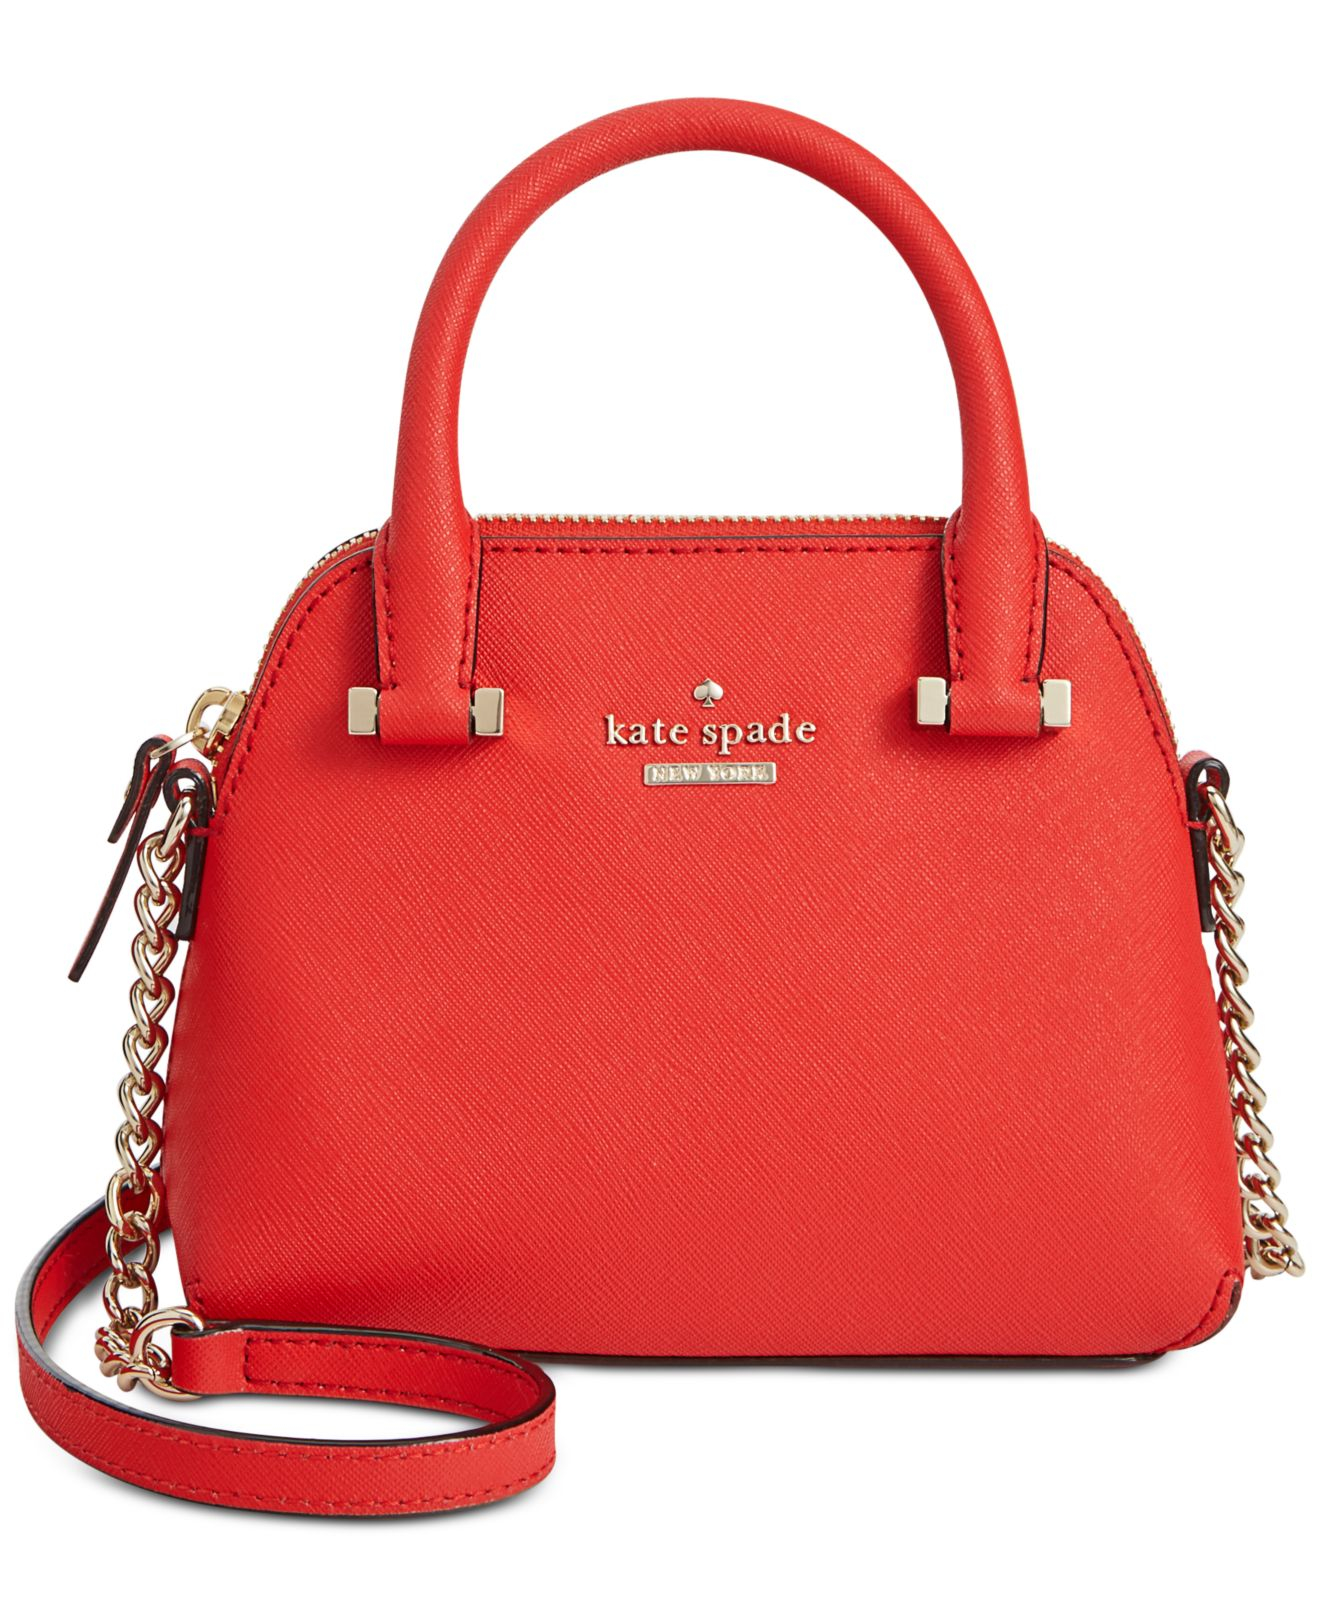 Lyst - Kate spade new york Cedar Street Mini Maise Bag in Red